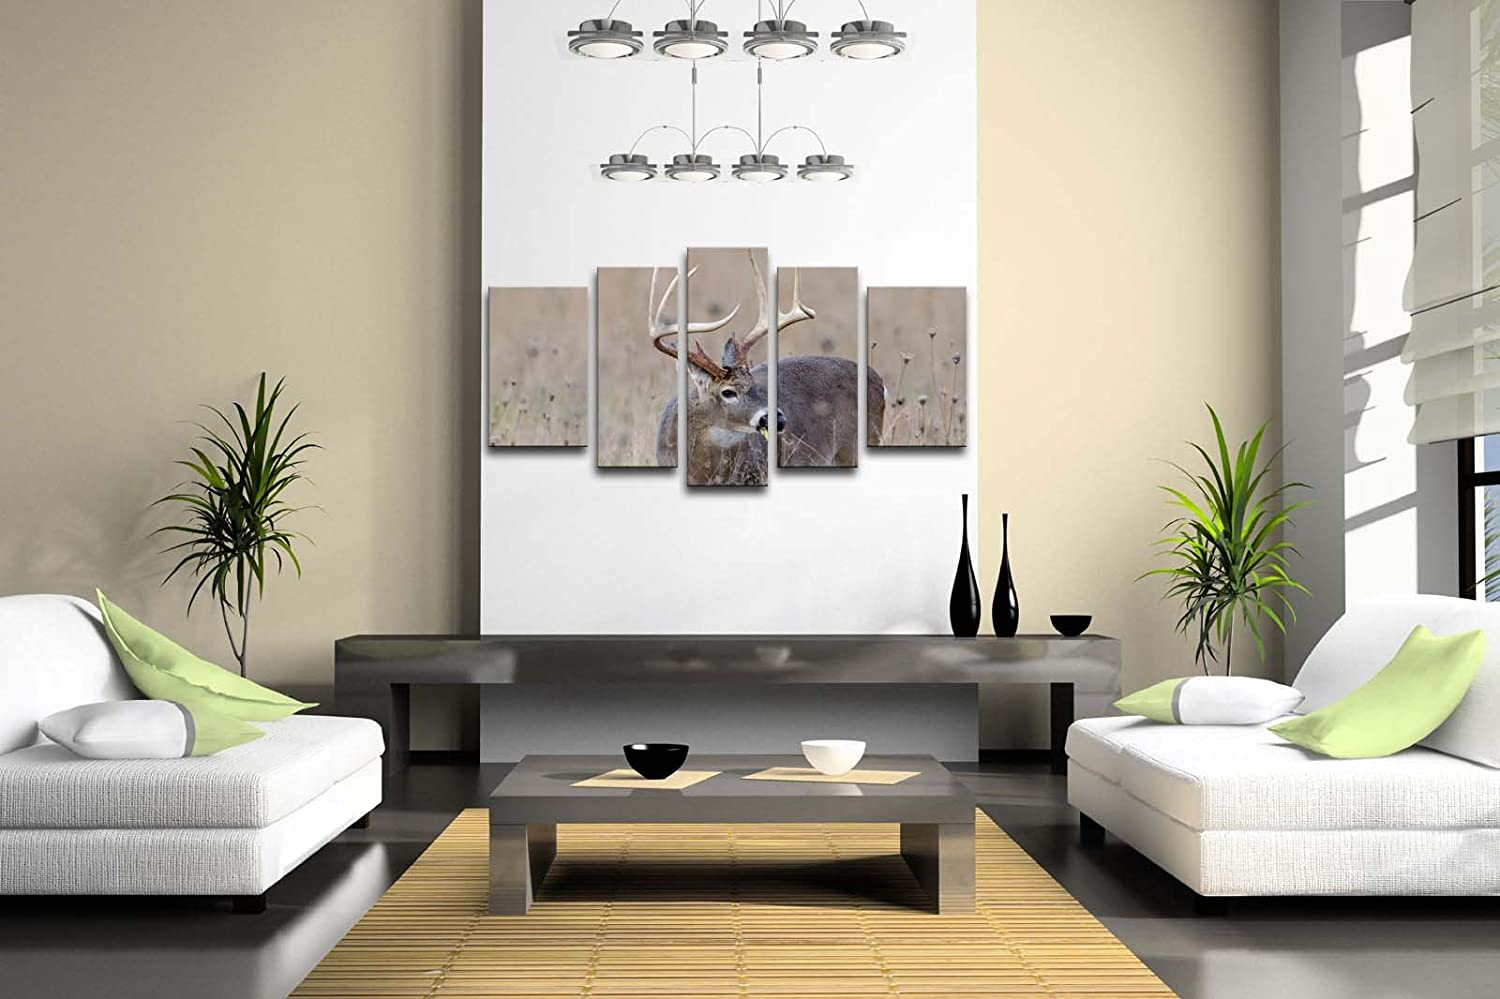 amazon com 5 panel wall art whitetail deer buck in a foggy field amazon com 5 panel wall art whitetail deer buck in a foggy field painting the picture print on canvas animal pictures for home decor decoration gift piece